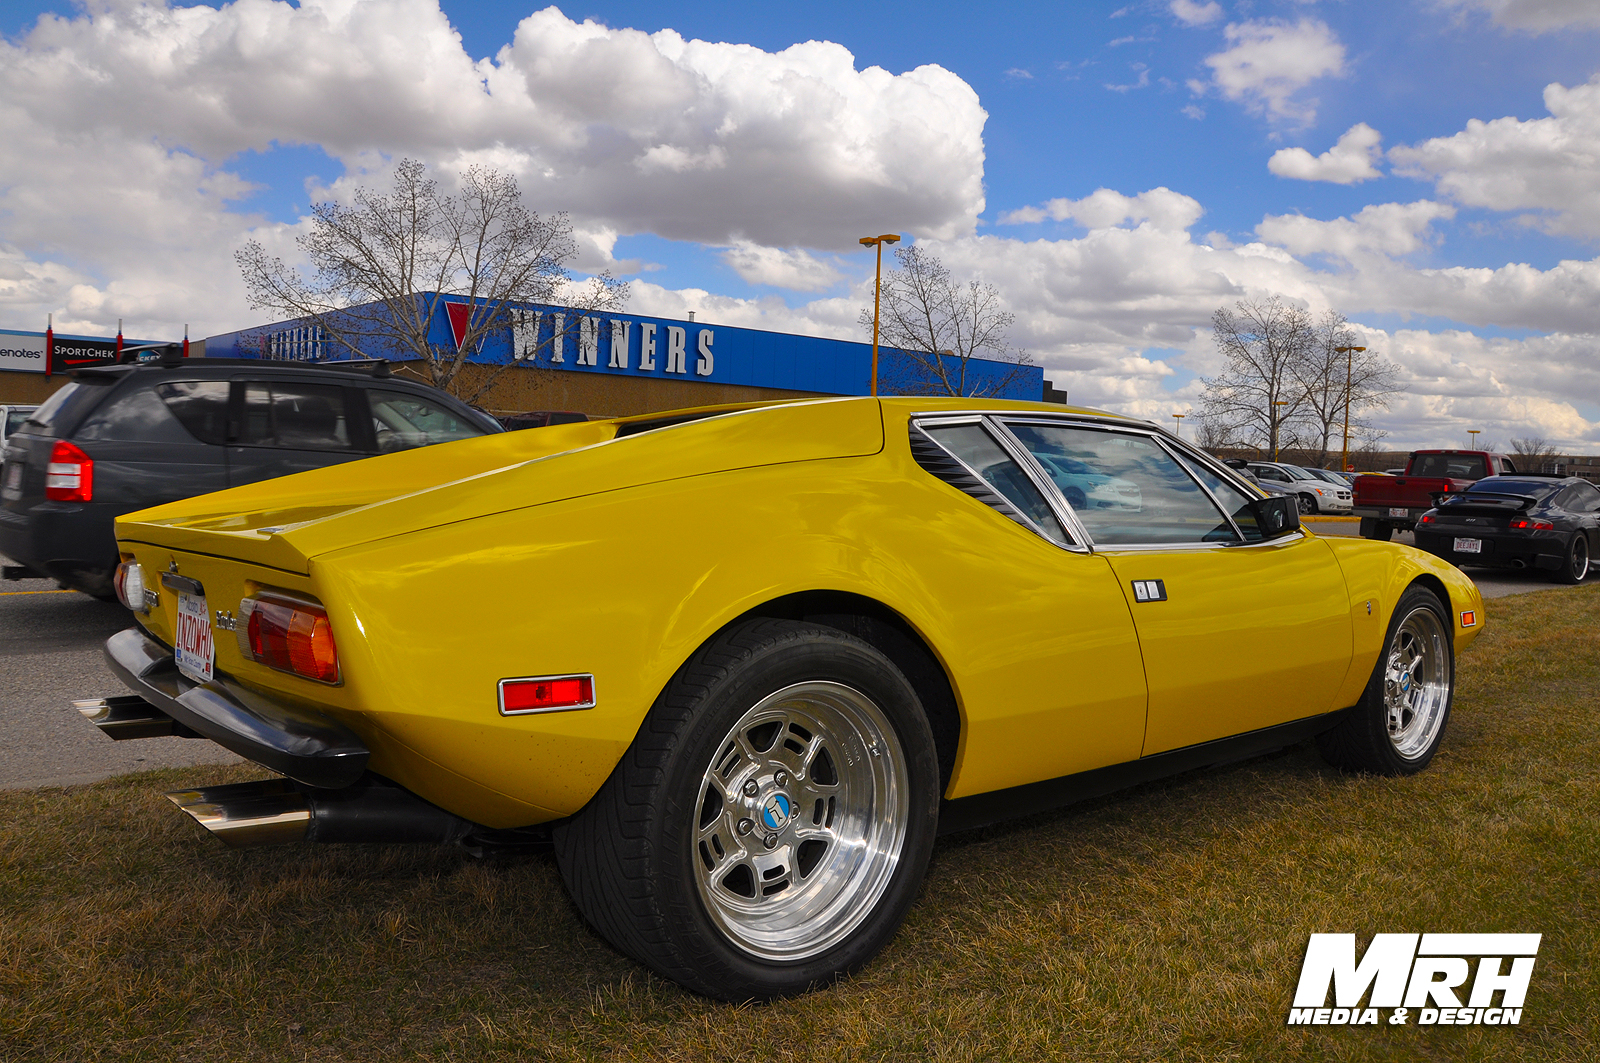 Calgary Show Shine Season Beginning With Spring Thaw Outdoor Car - Current sports cars